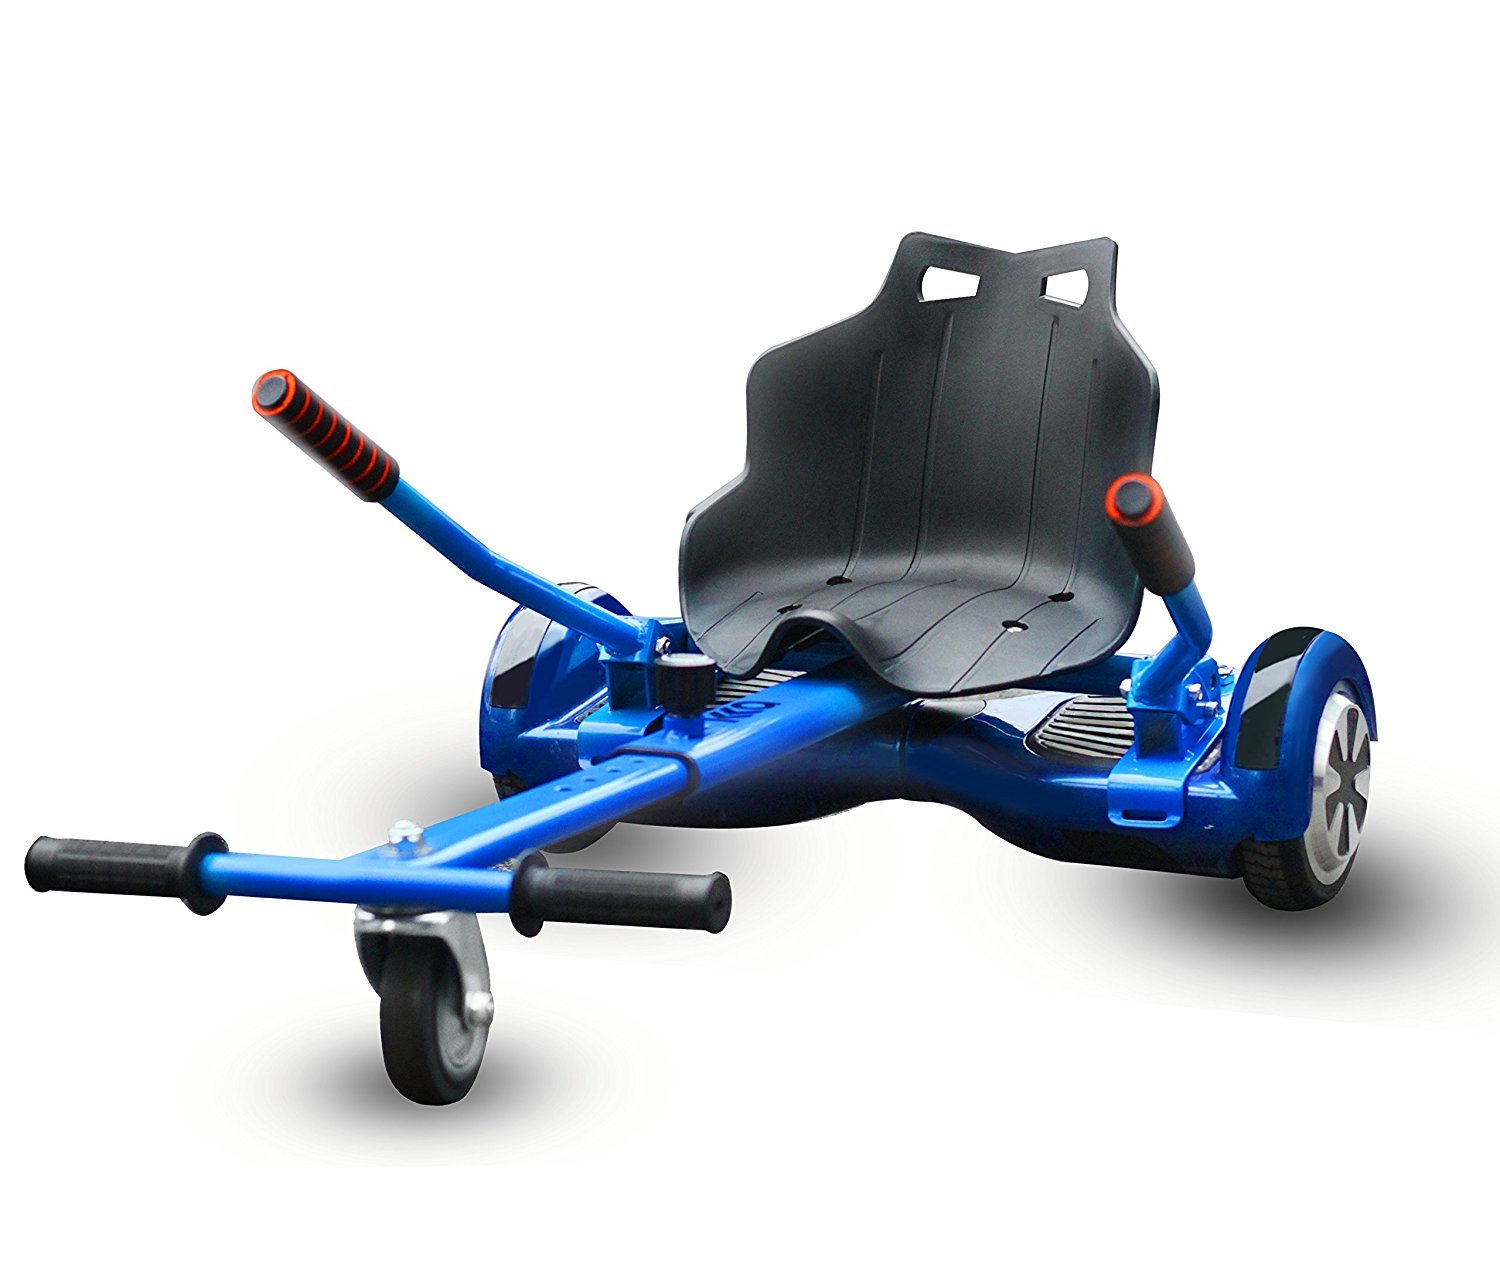 Hoverboard Seat Attachment, Go Kart, Hoverboard Go Cart Accessories, Heavy Duty Frame, Fun for Kids Fits 6.5''/8''/10'', Go Kart Conversion Kit For Hoverboard (Blue)